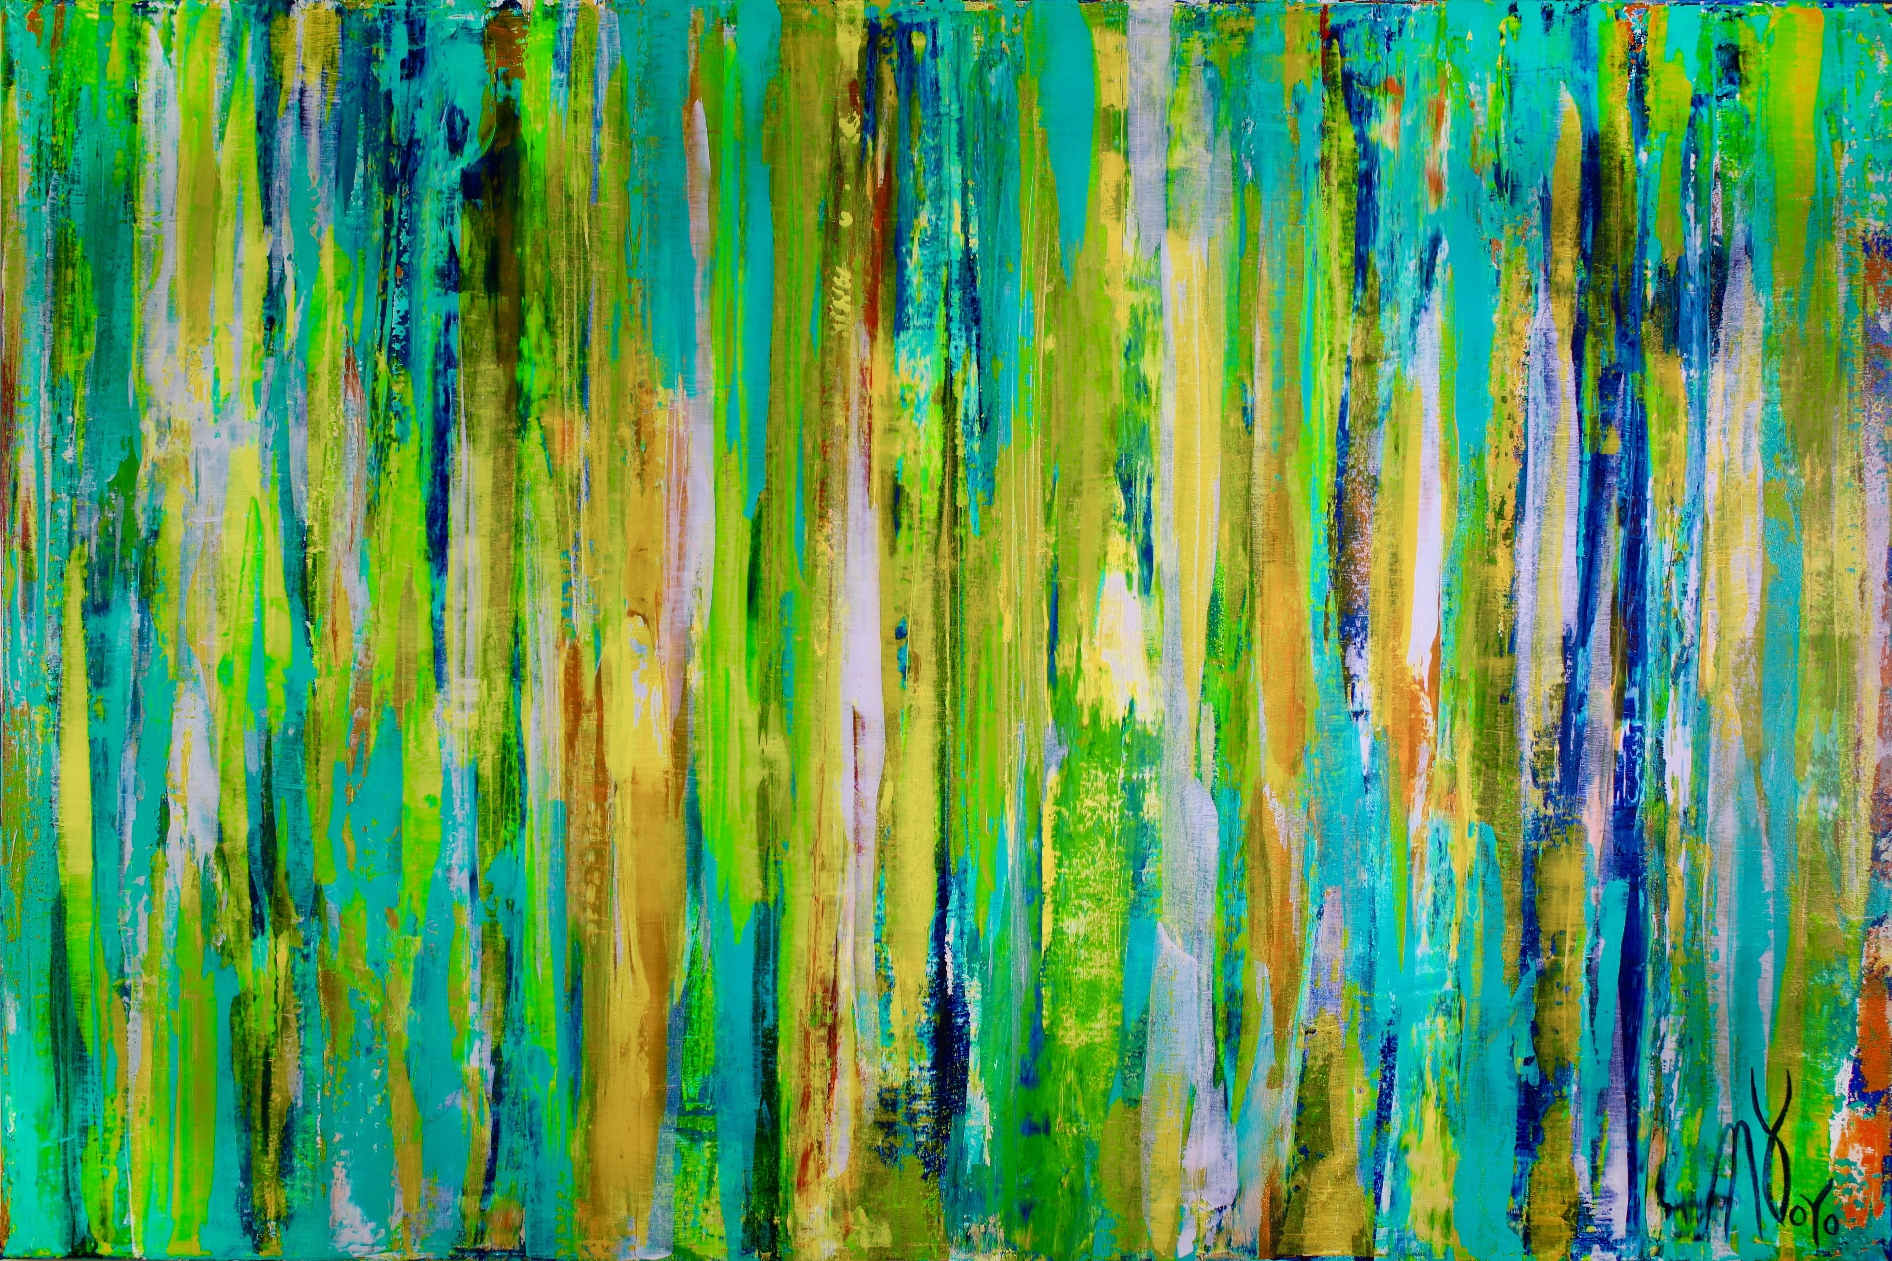 Enchanted Spectra 7 (Late Spring) (2018) Acrylic painting by Nestor Toro